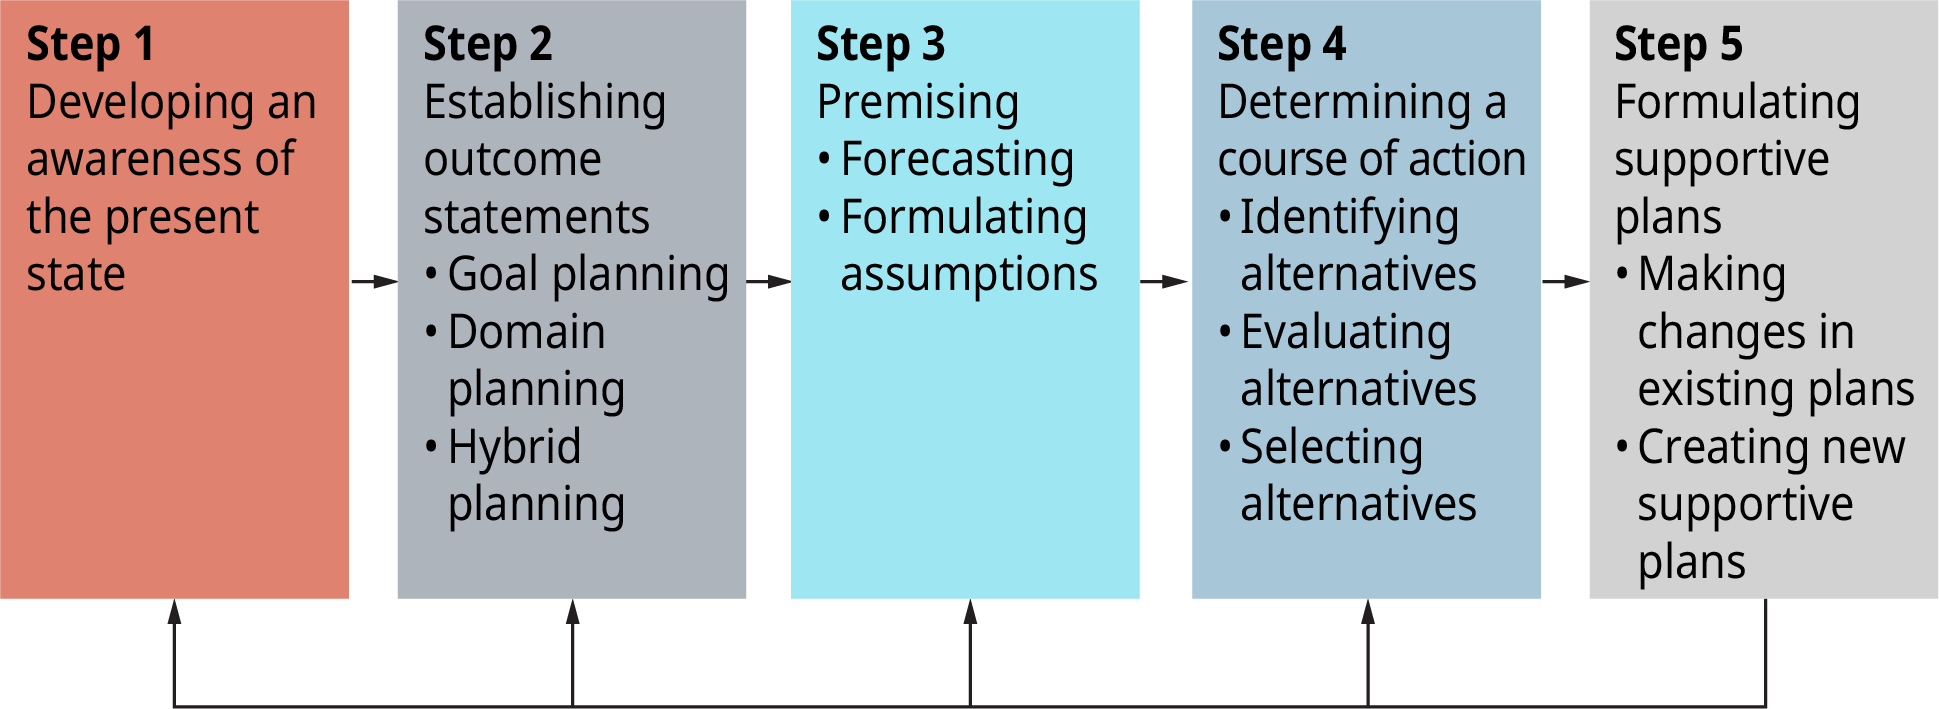 A flowchart shows the five steps in the planning process.